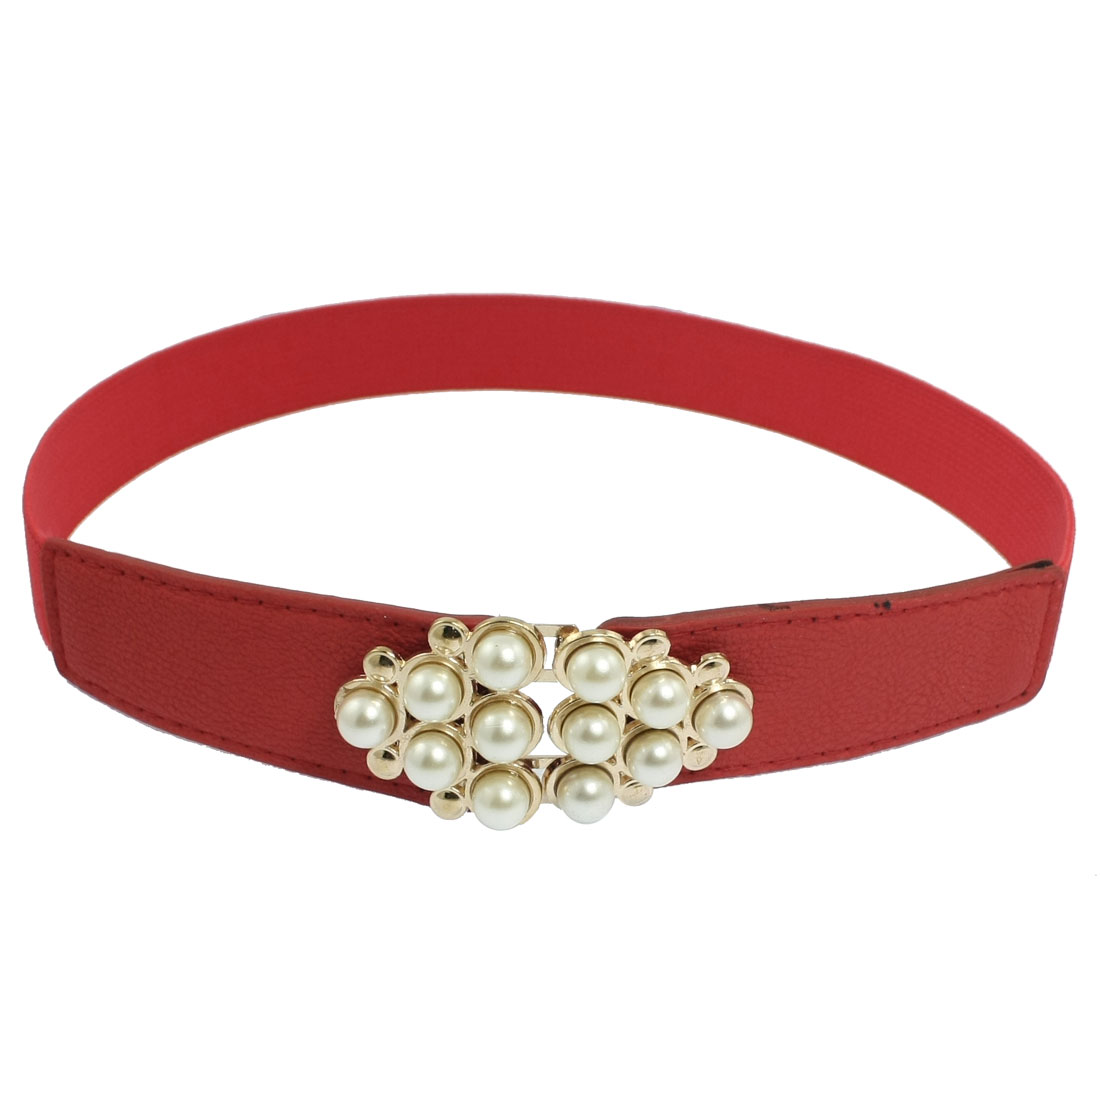 Faux Pearl Adorn Interlocking Buckle Red Stretch Waist Belt Band for Ladies